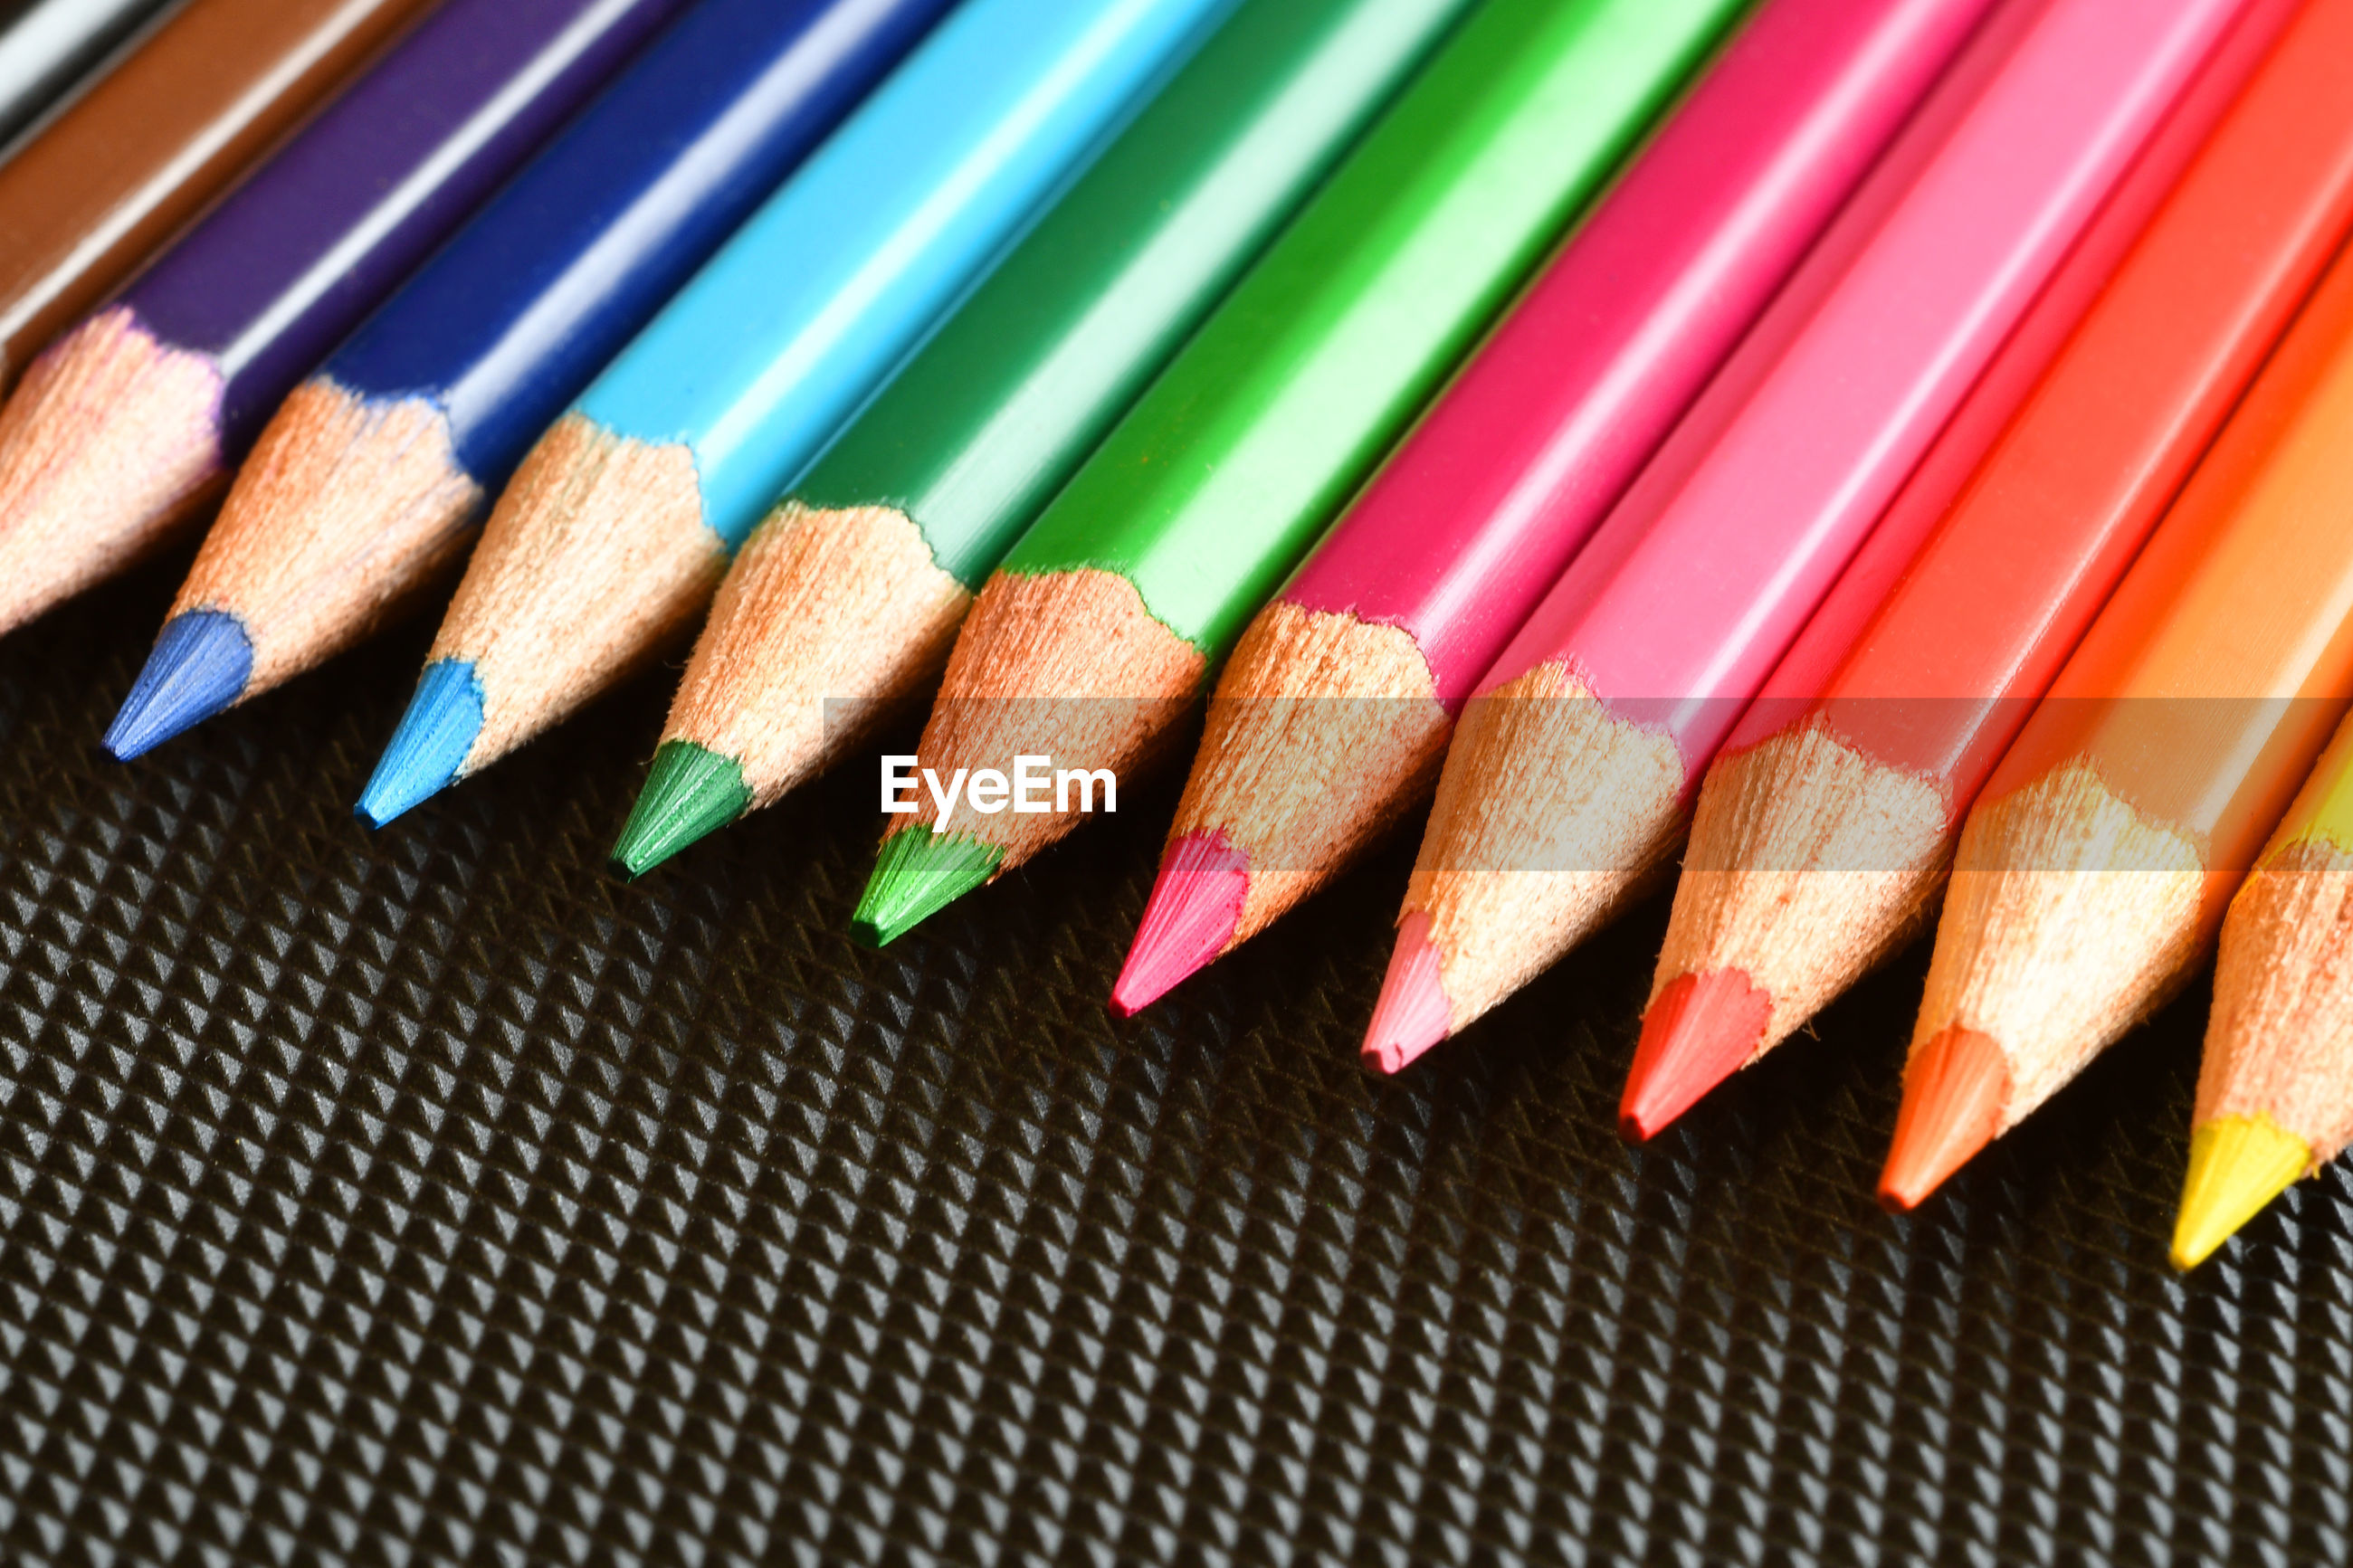 Close-up of colored pencils